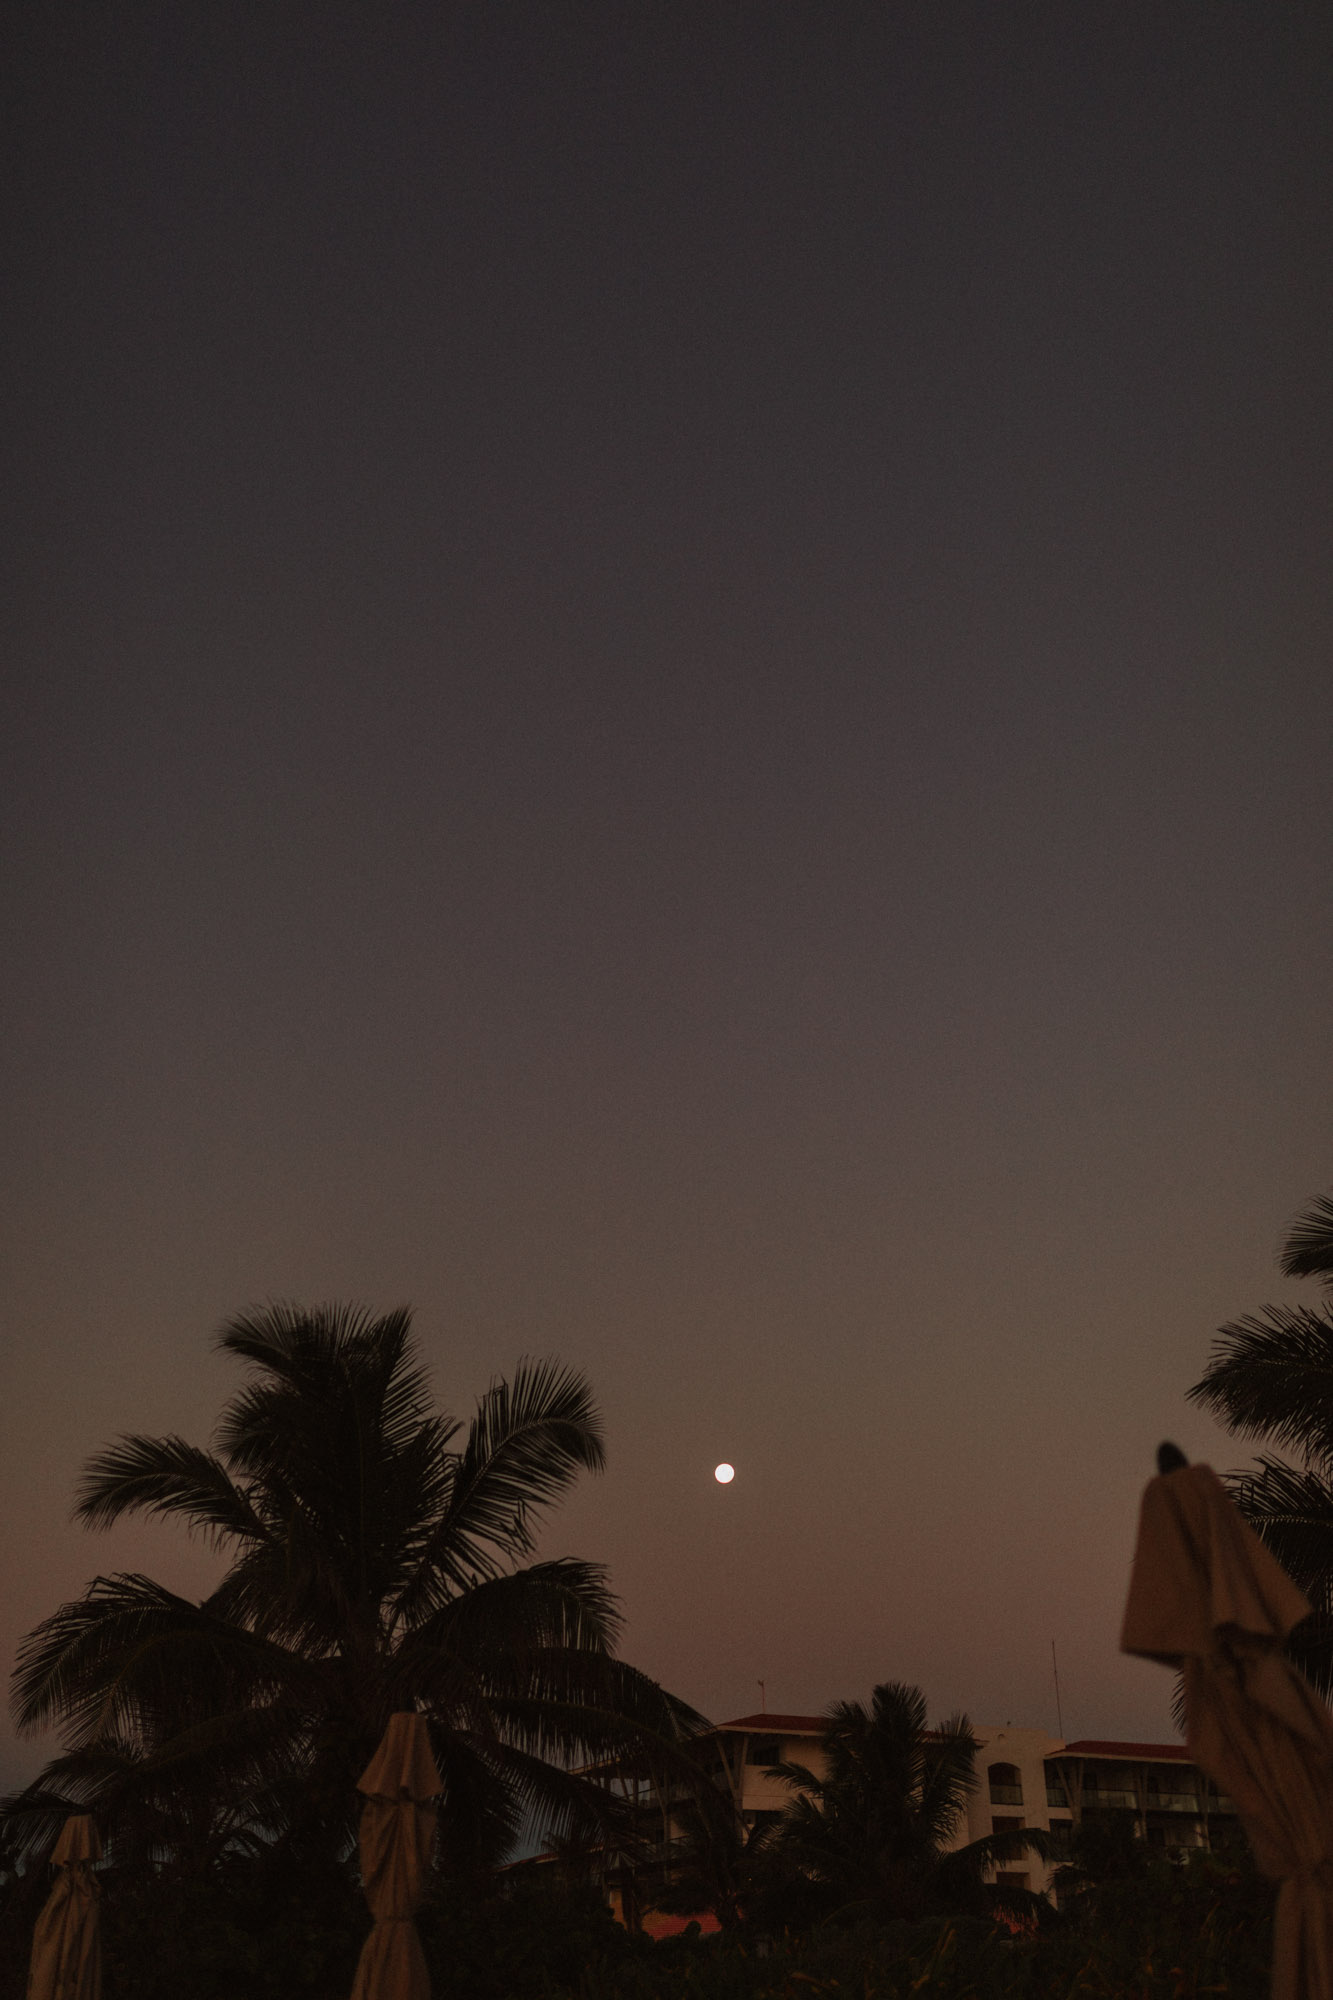 moon over palm trees in tropical city